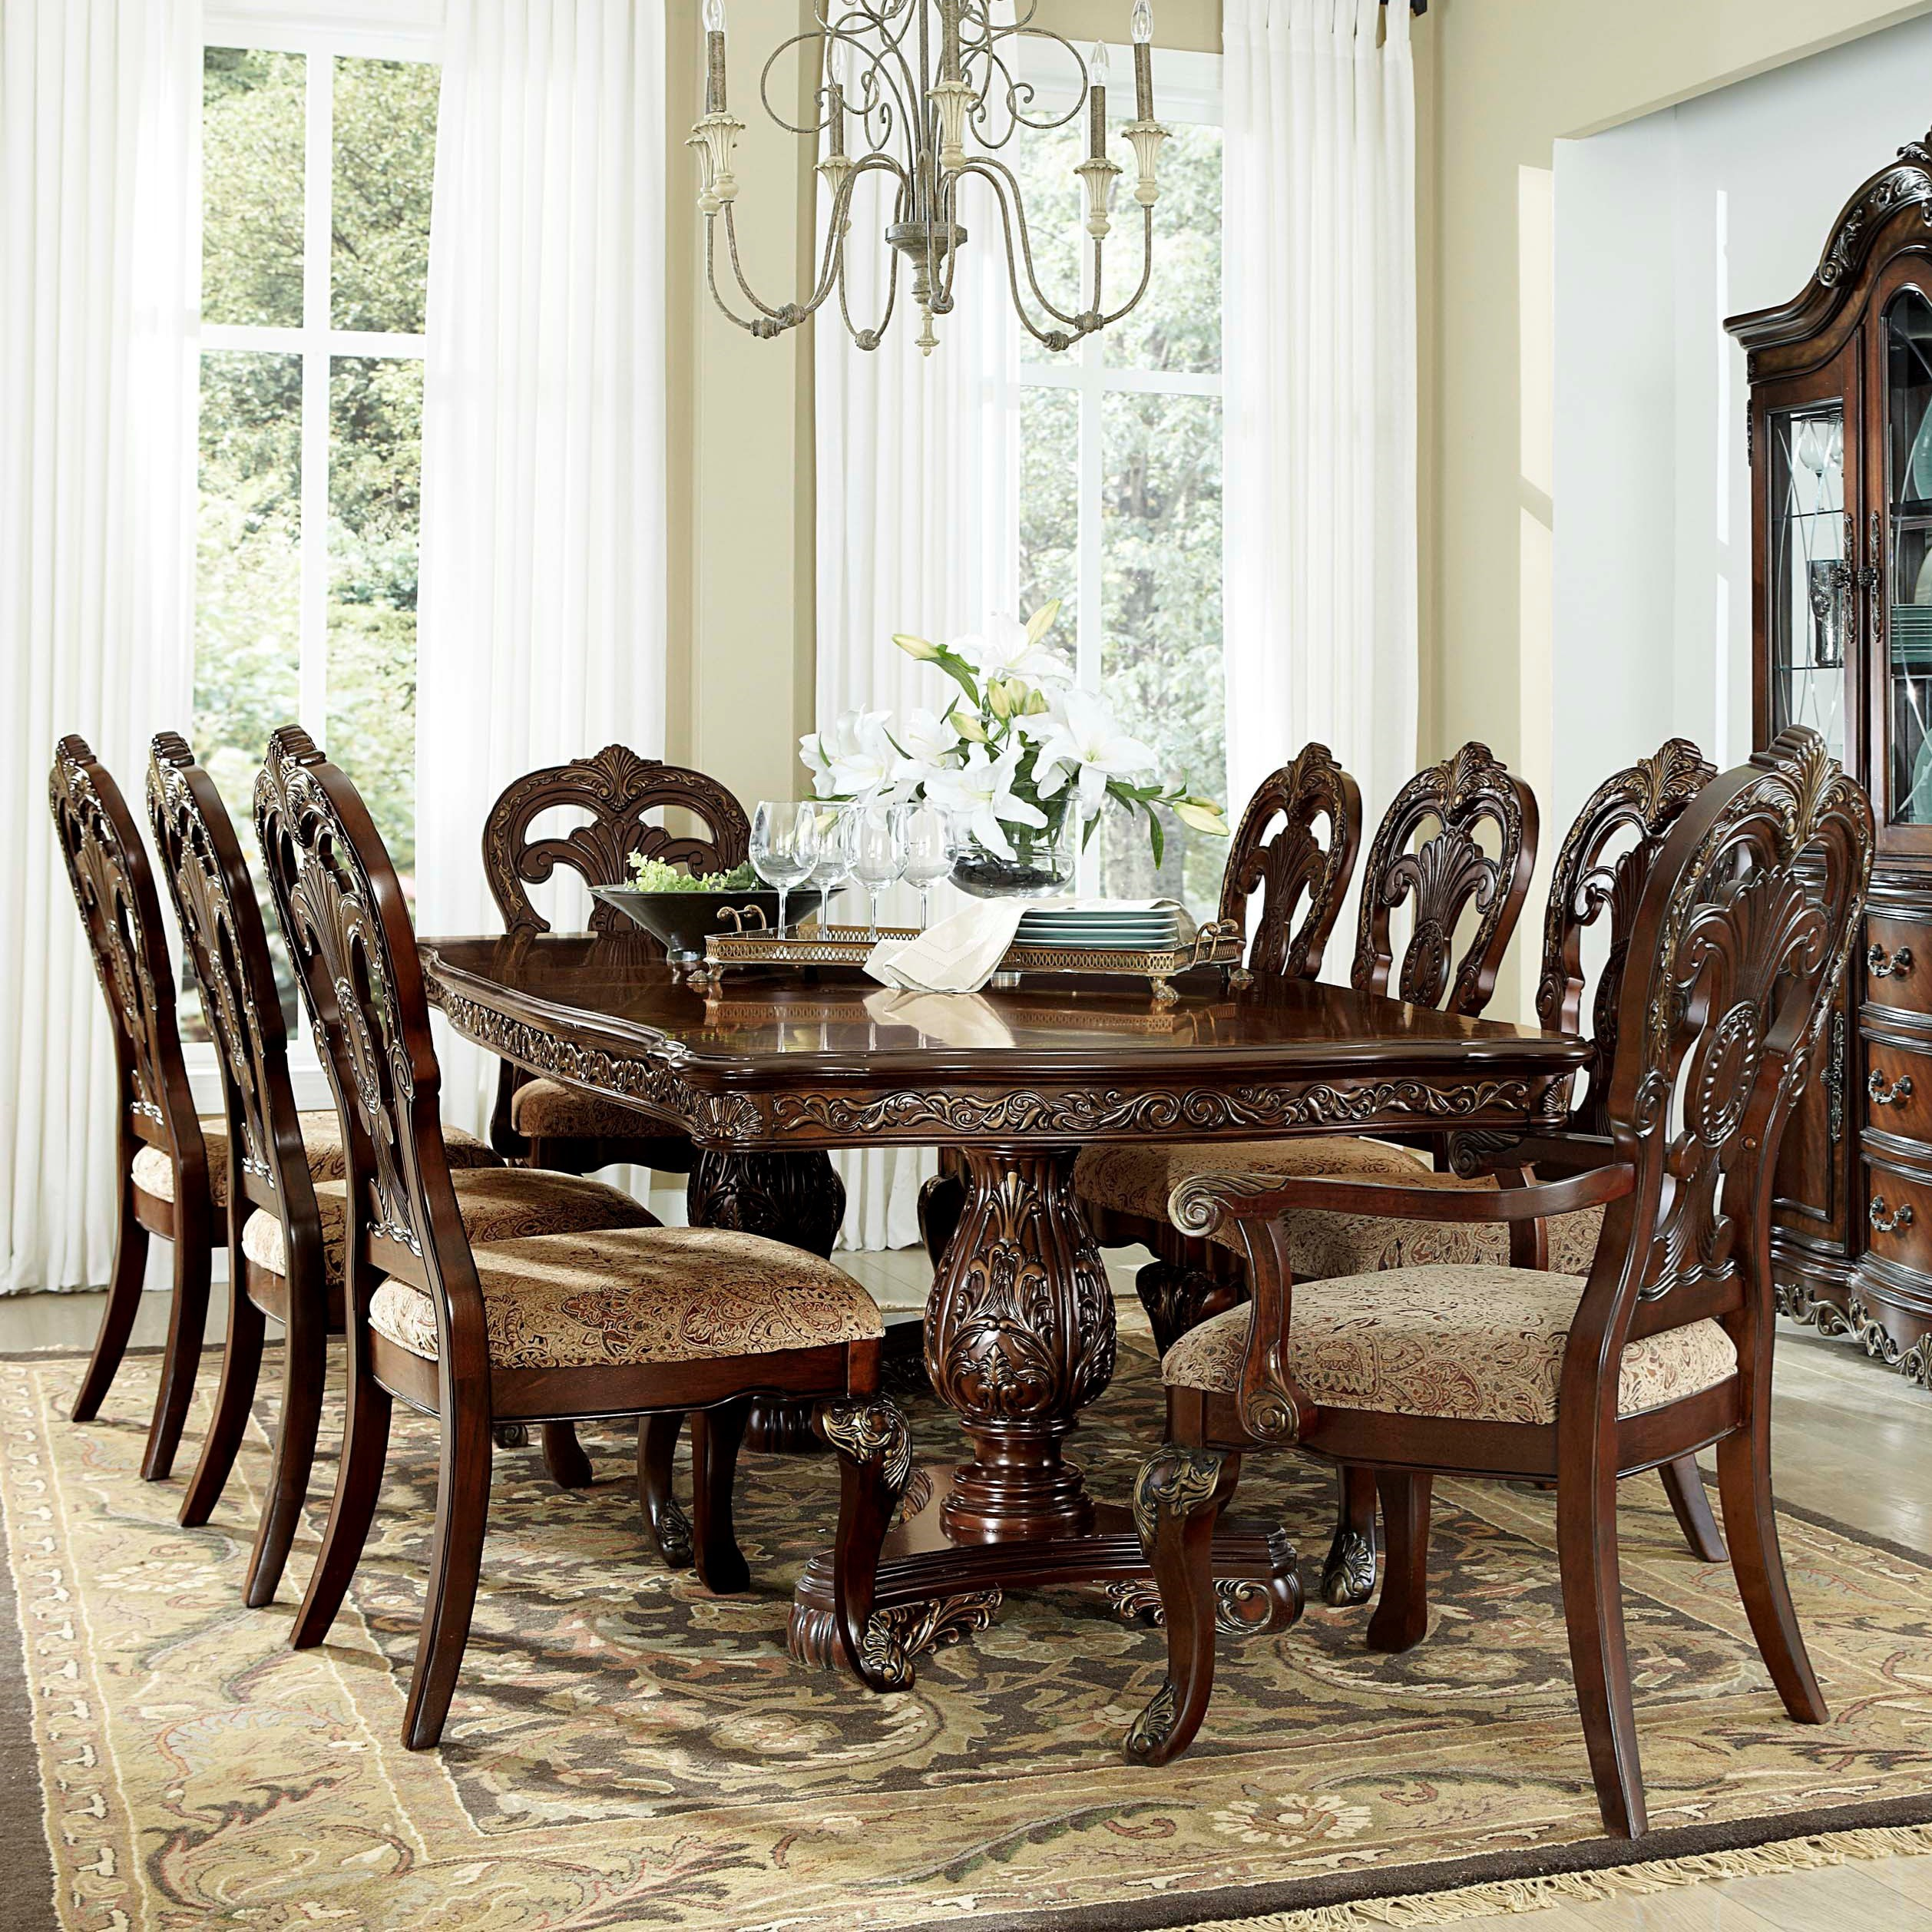 Elegant Dining Room Sets: Homelegance Deryn Park Traditional Dining Table And Chair